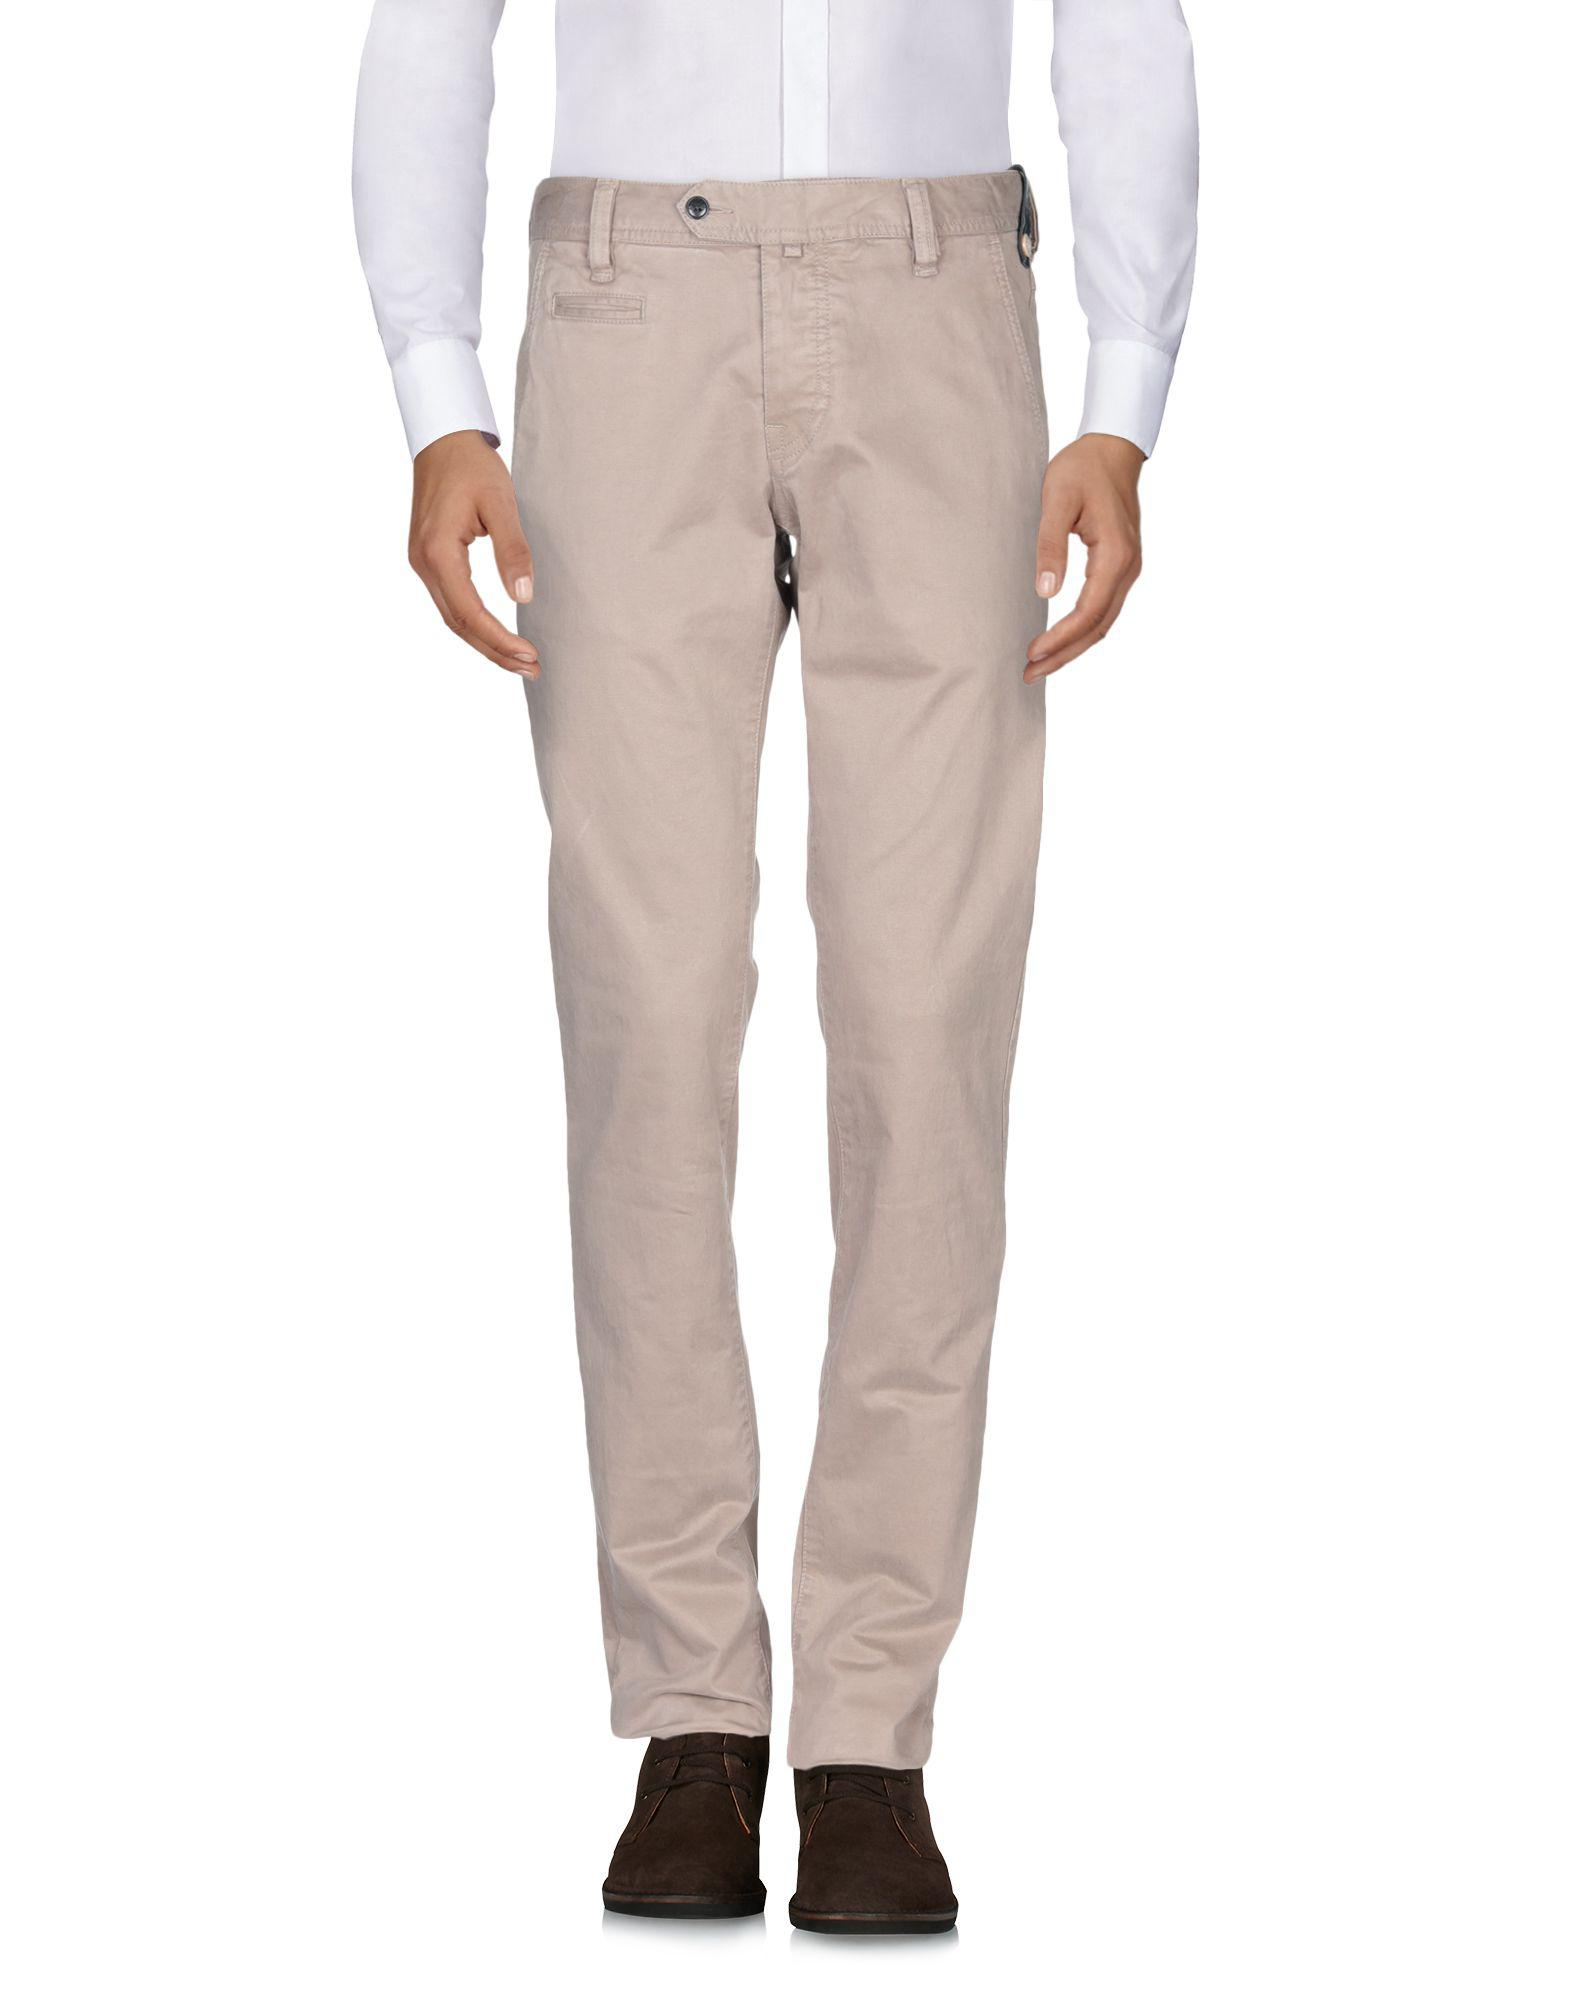 AT.P.CO Leather Casual Trouser in Khaki (Natural) for Men